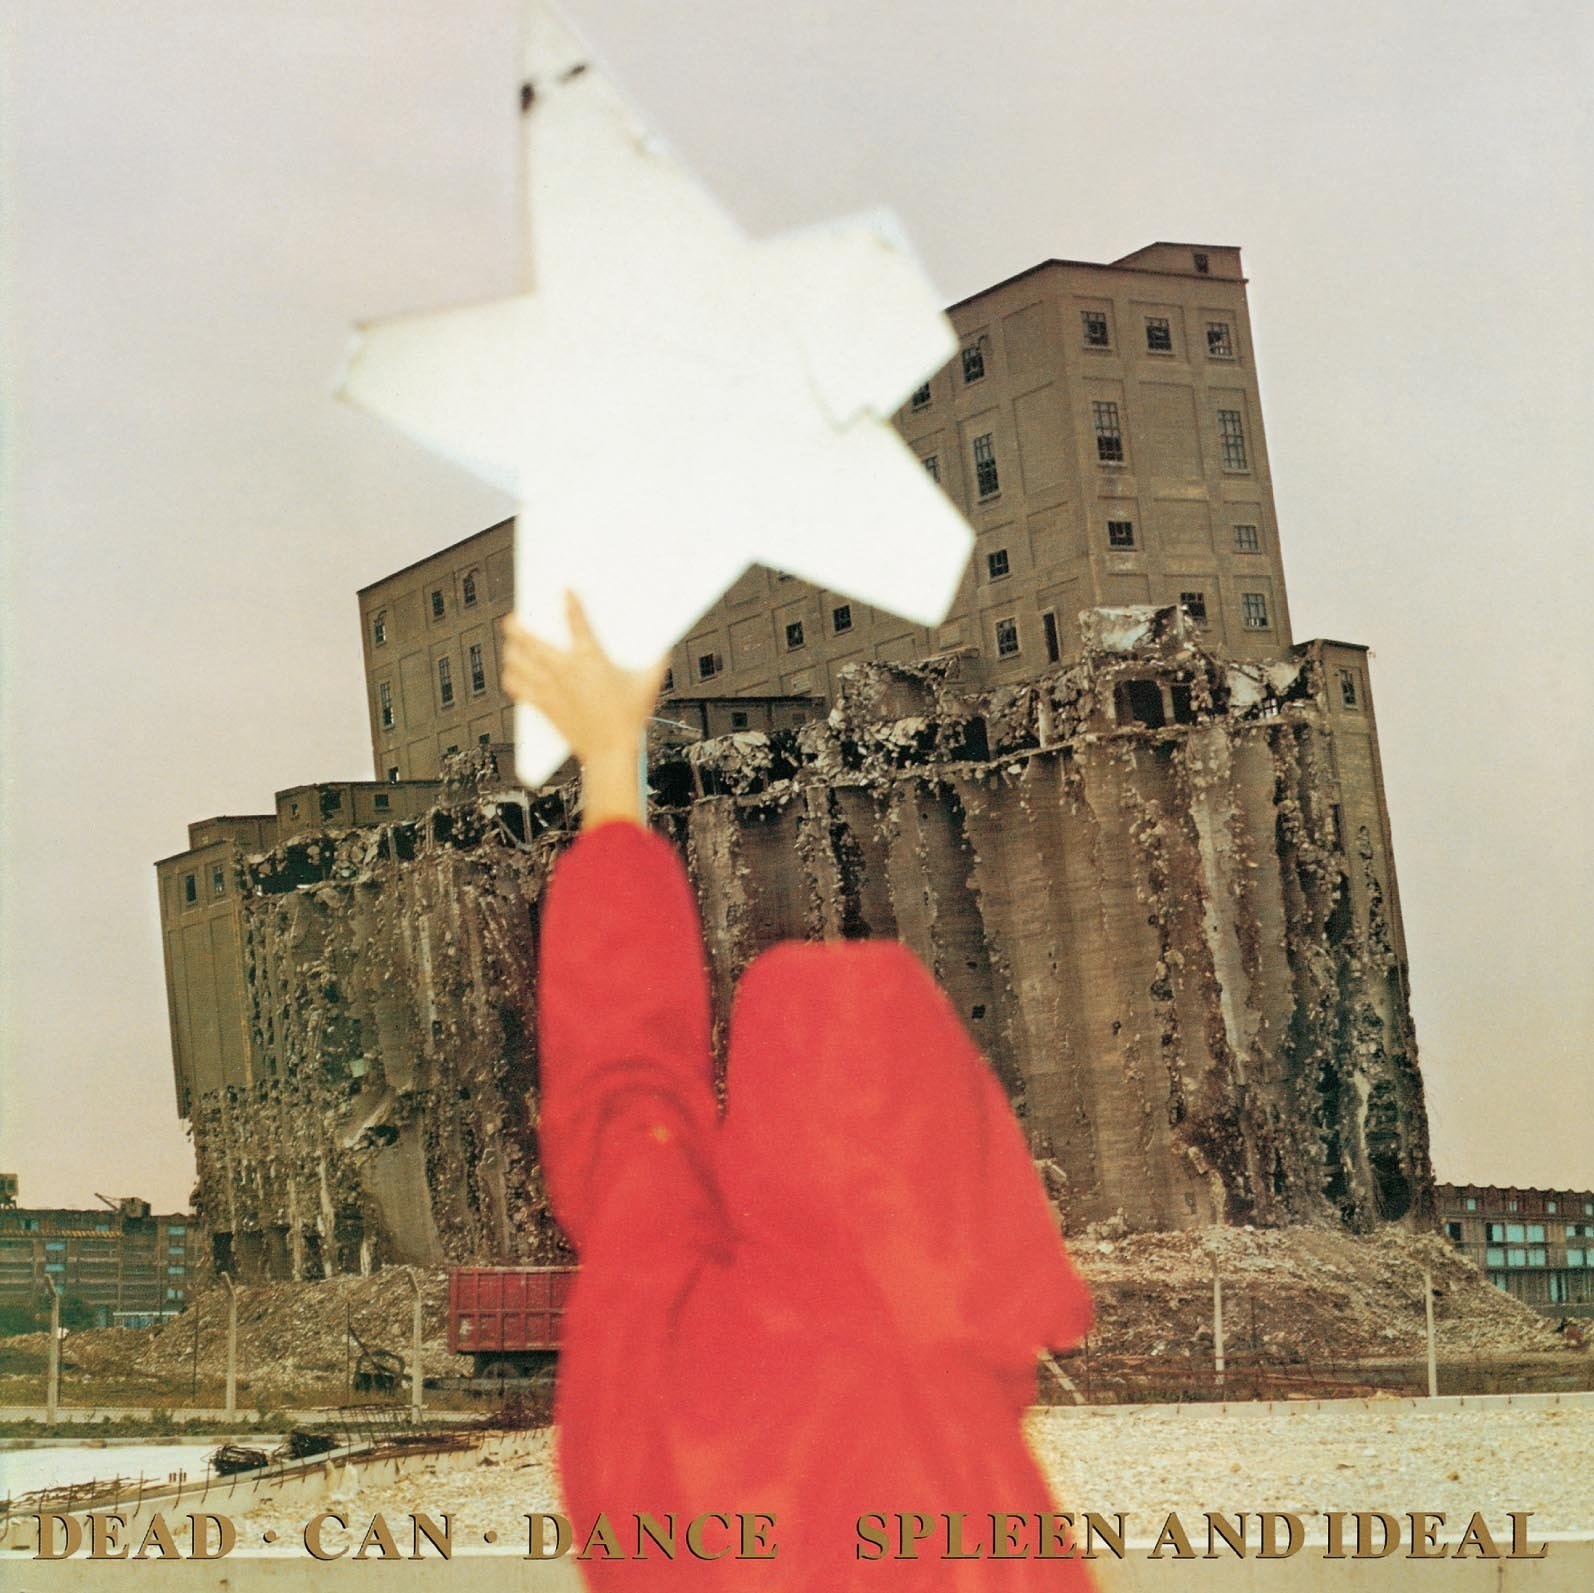 Dead Can Dance - Spleen & Ideal (Reissue, Special Packaging)